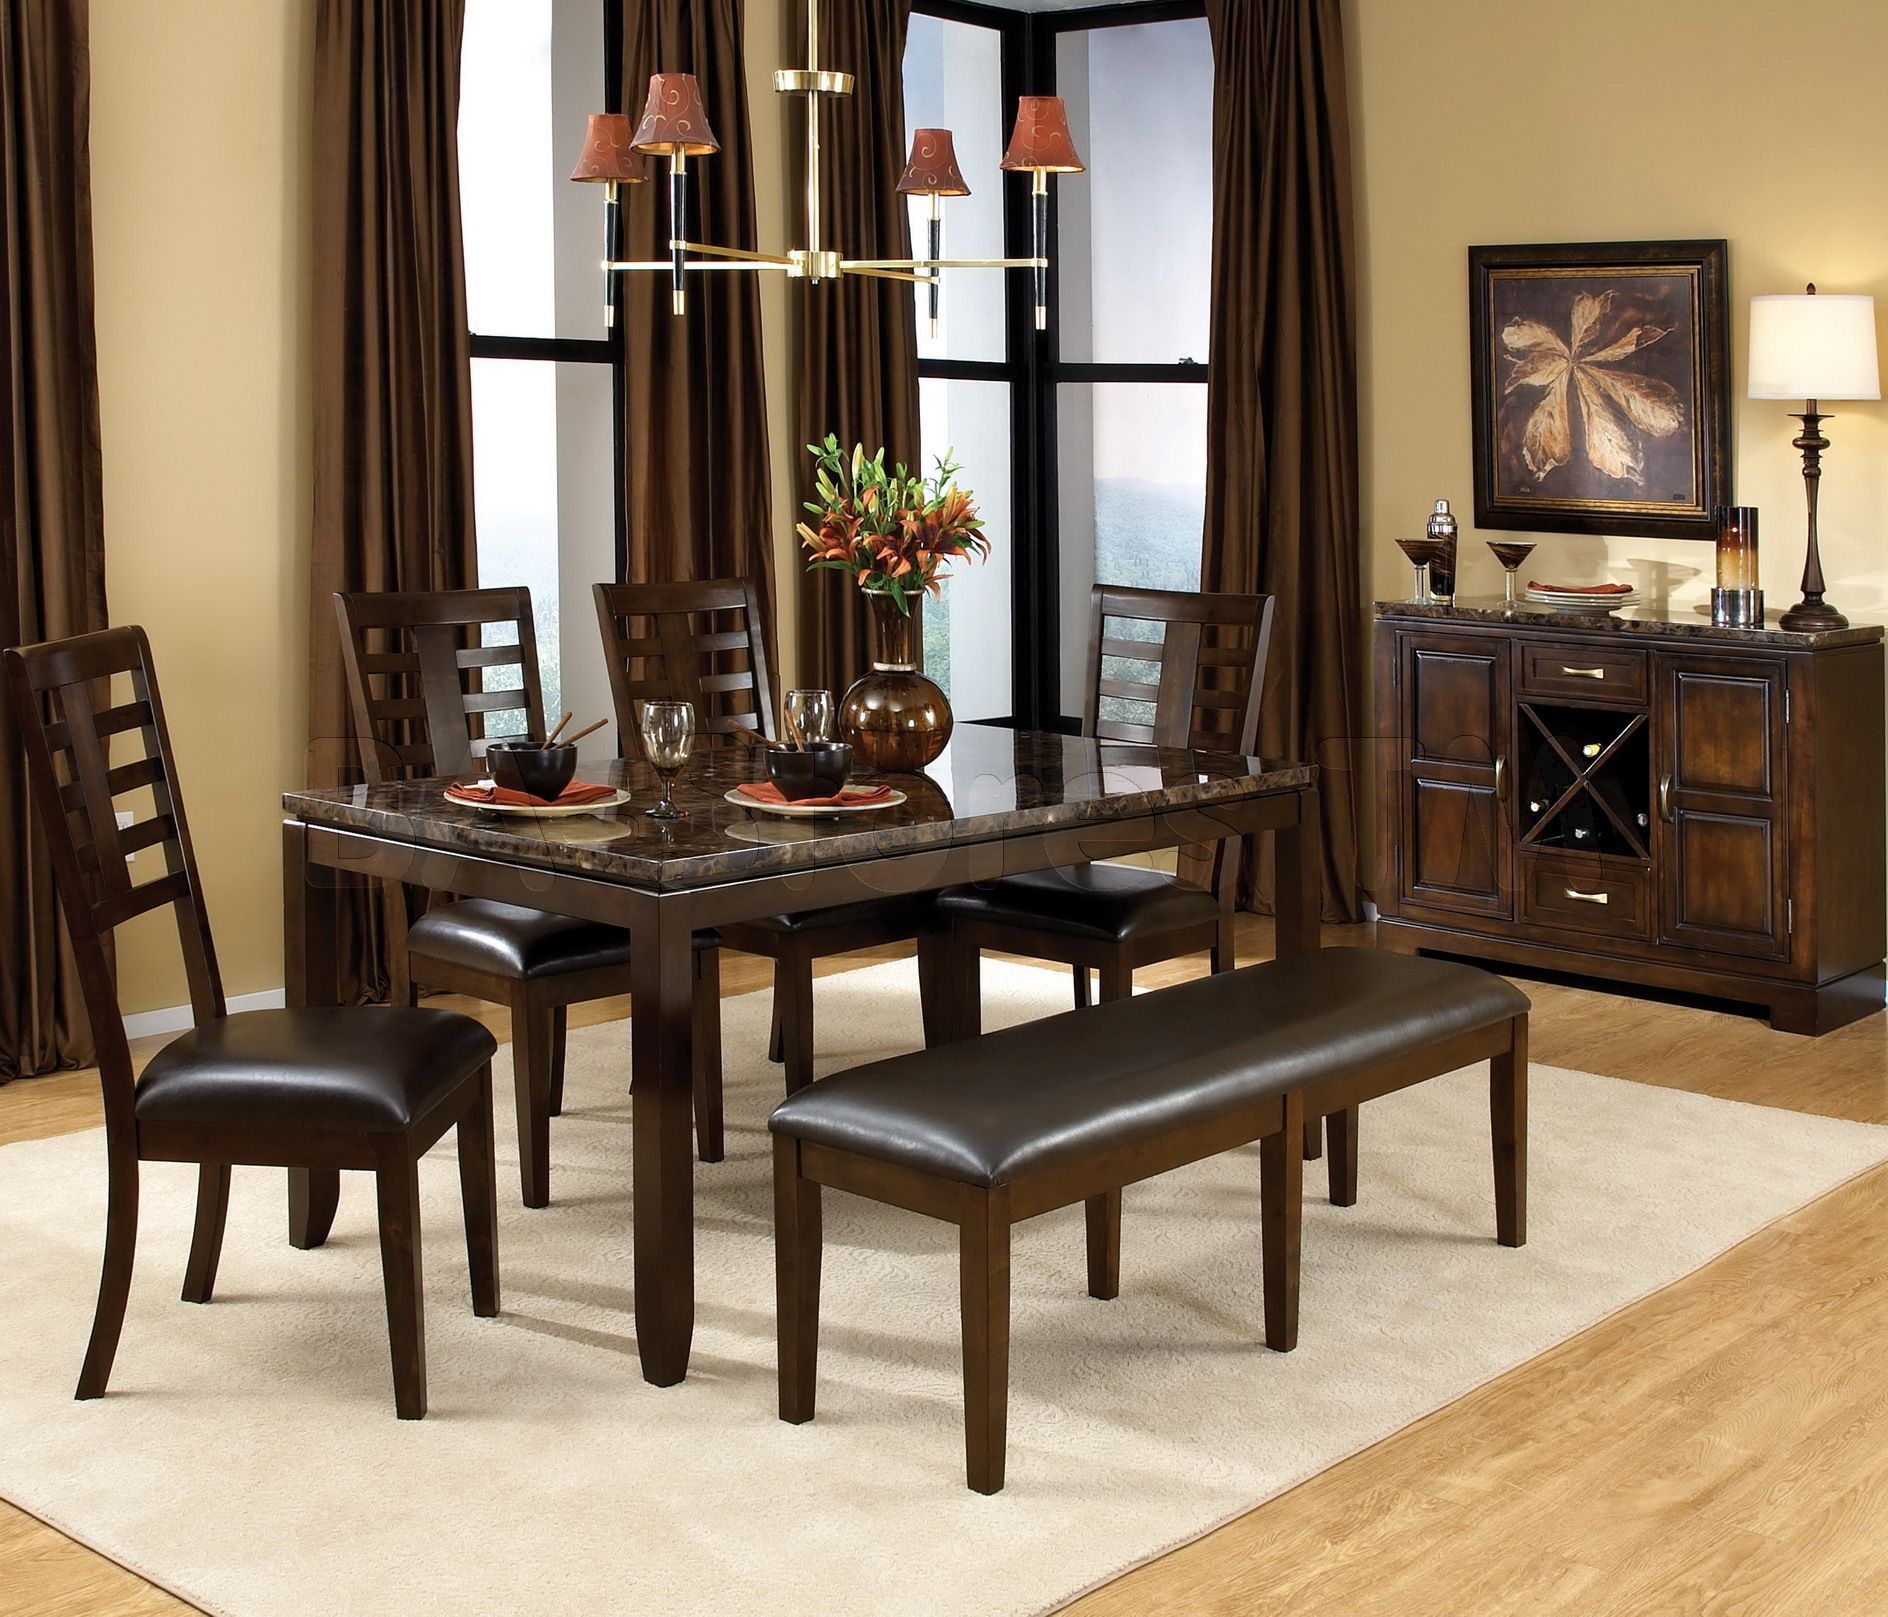 Merveilleux Marvelous Classic Ikea Dining Sets With Brown Color And Single Bench On  White Dining Rugs Over